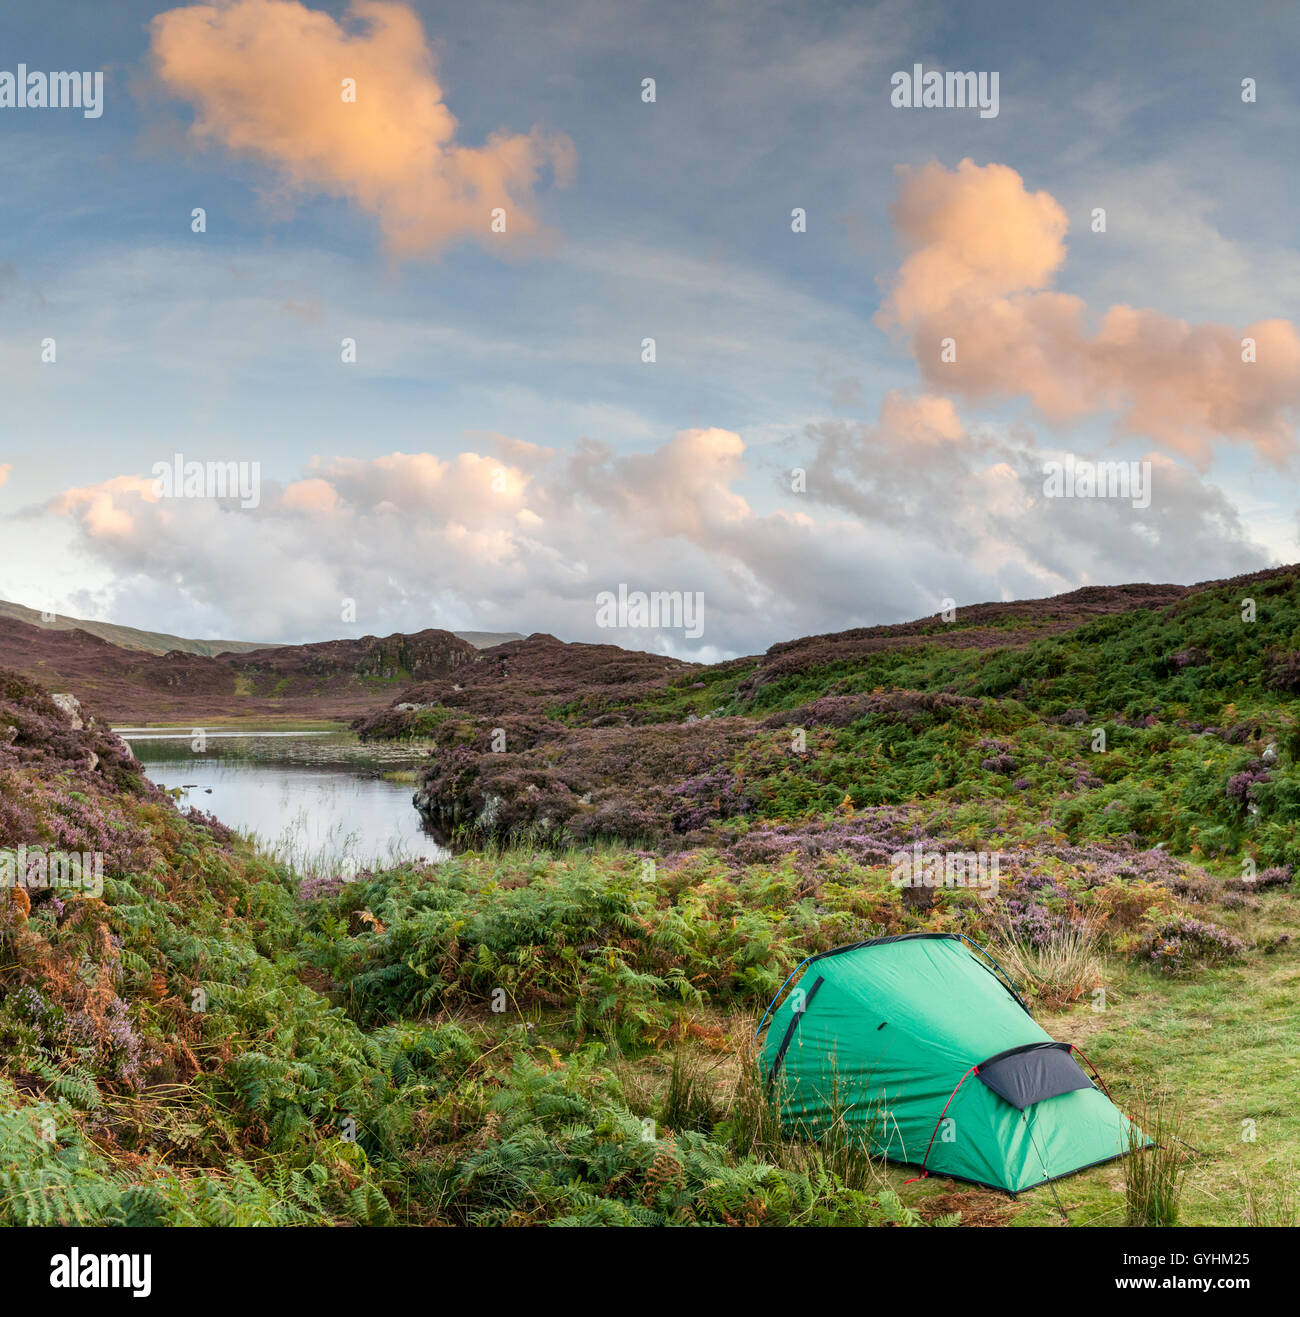 Wild camp with little green tent at Dock Tarn, a lake amongst the fells above Watendlath in the English Lake District - Stock Image